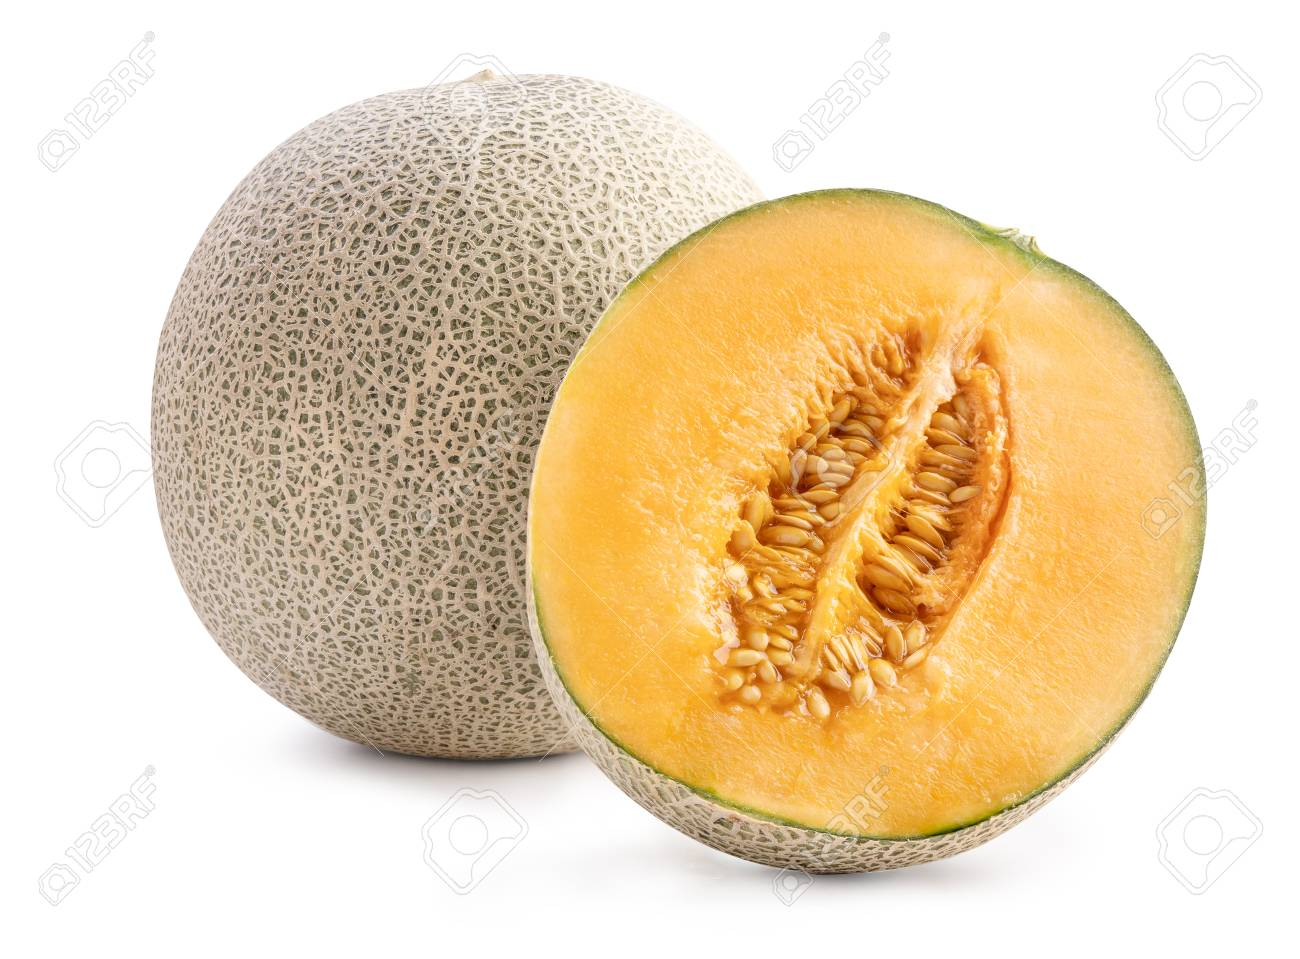 Beautiful Tasty Sliced Juicy Cantaloupe Melon Muskmelon Rock Stock Photo Picture And Royalty Free Image Image 122225557 This video details my 2019 experiences growing different types of melons and squash when grown vertically or horizontally like you would normally see. 123rf com